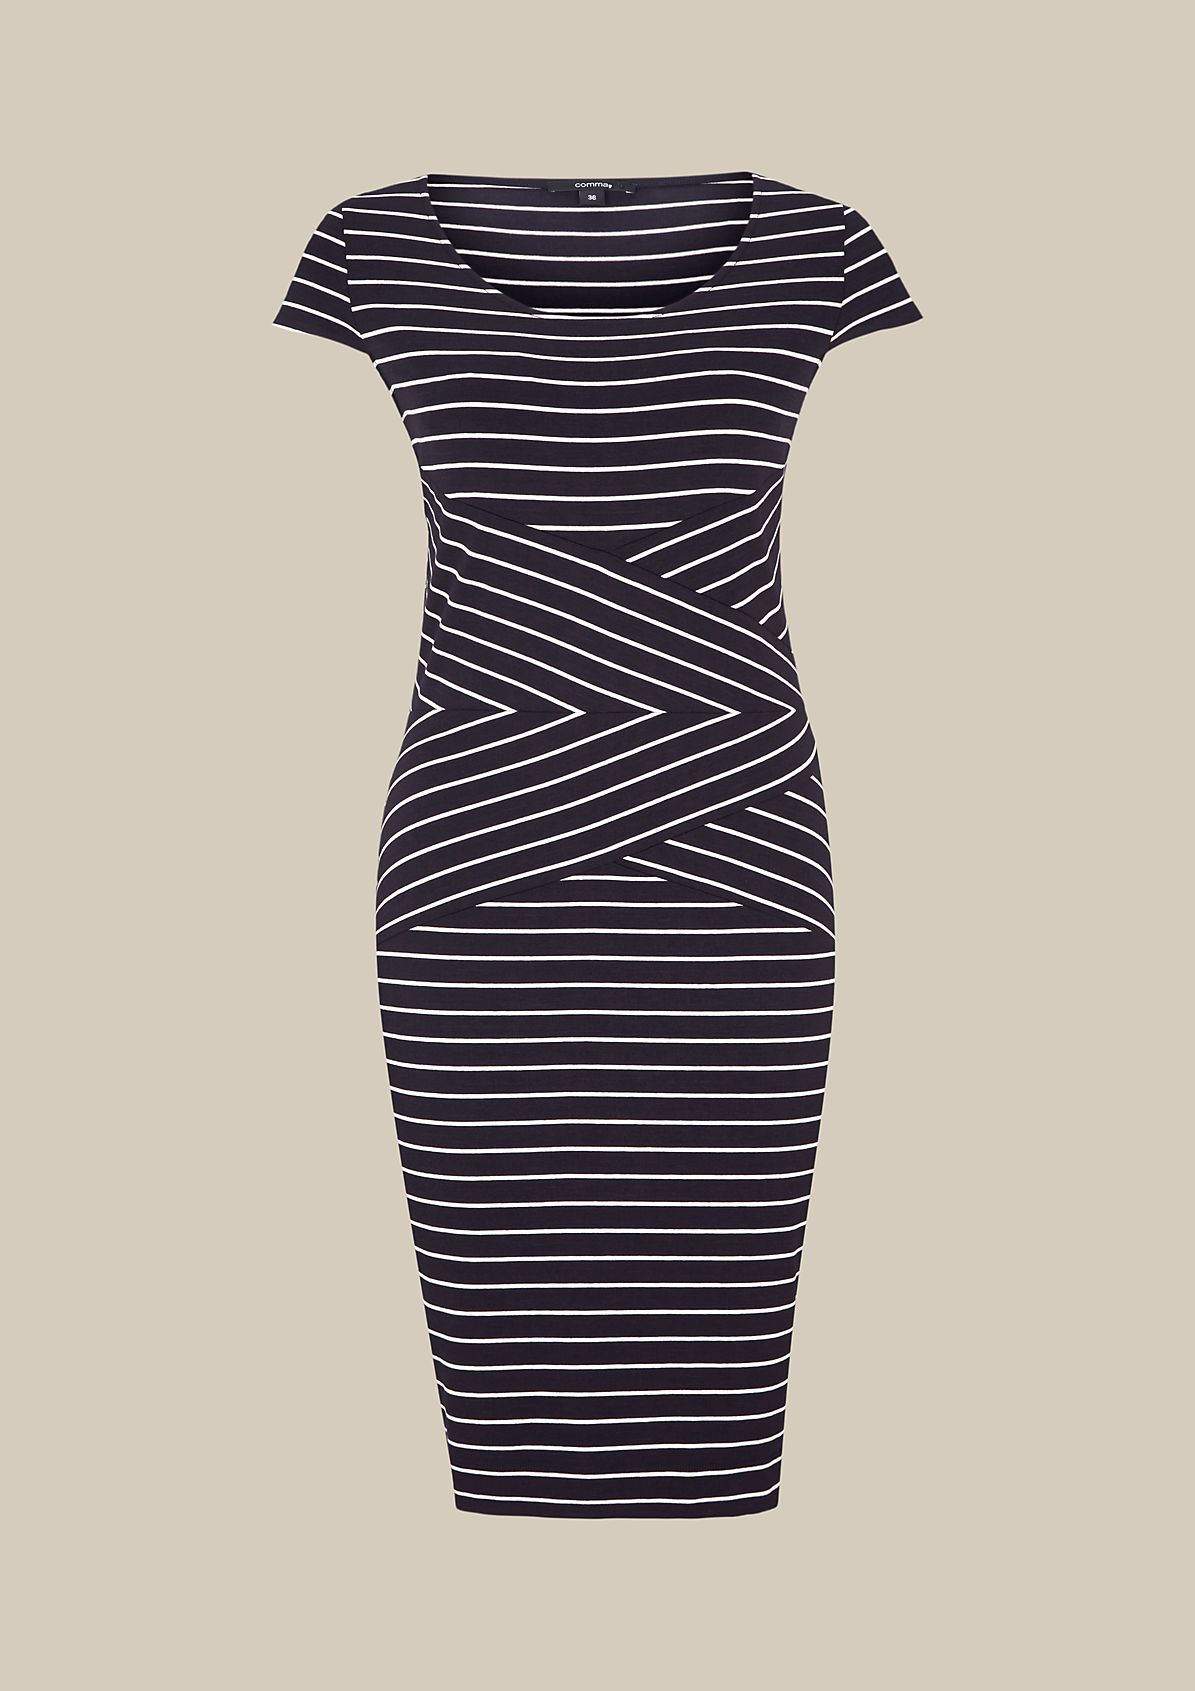 Sporty jersey dress with a beautiful striped pattern from s.Oliver